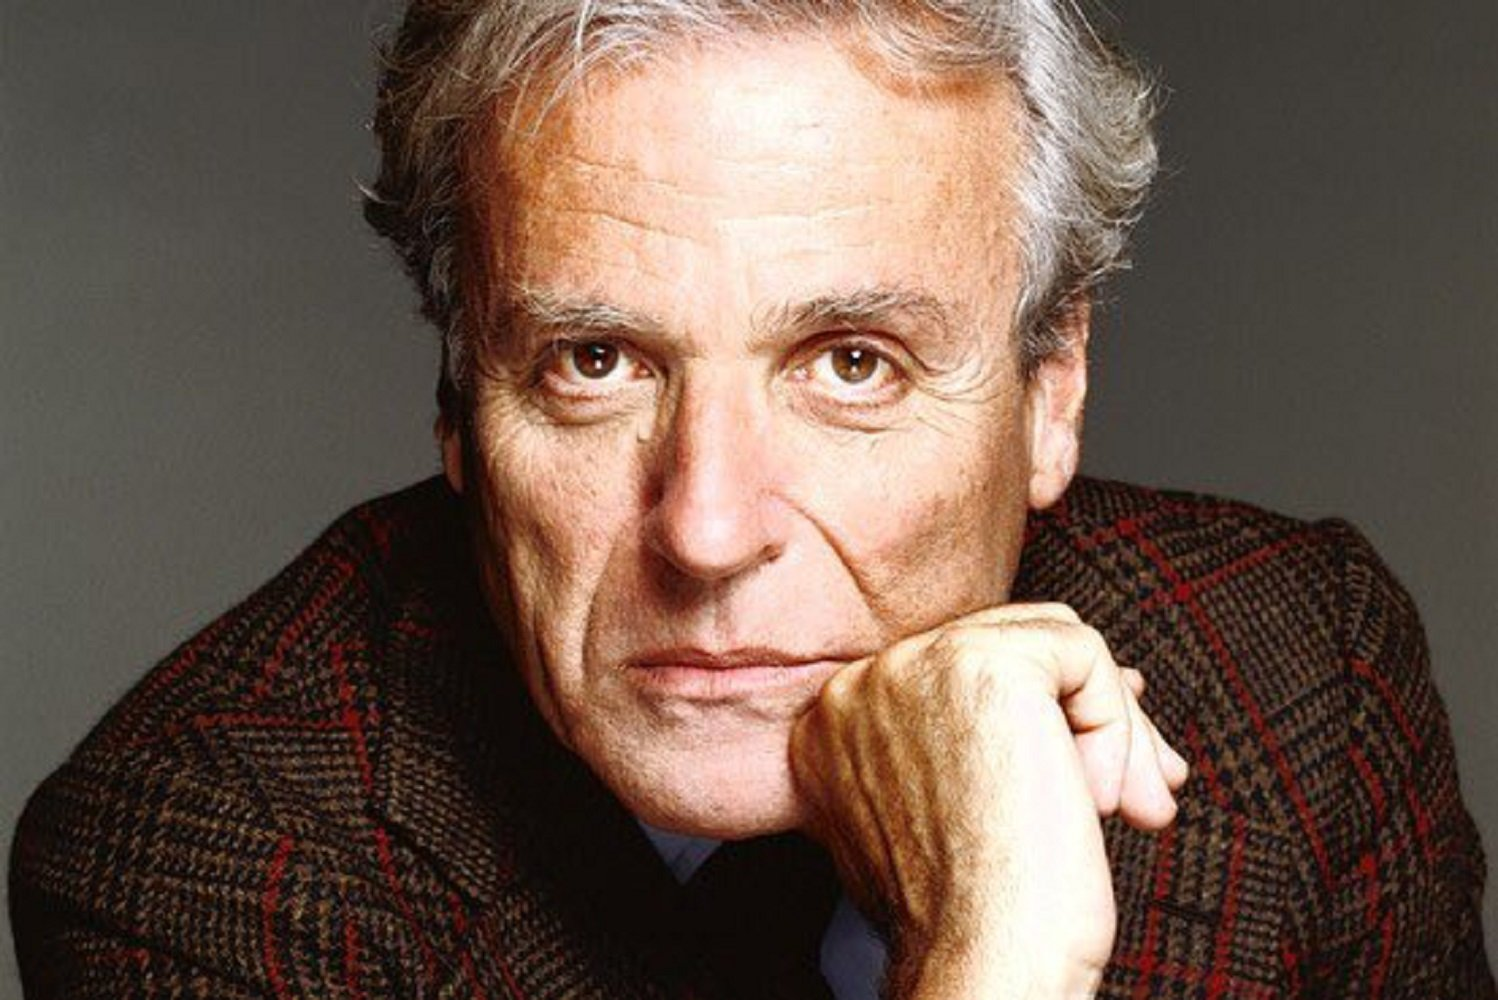 gran william goldman   ático de los libros